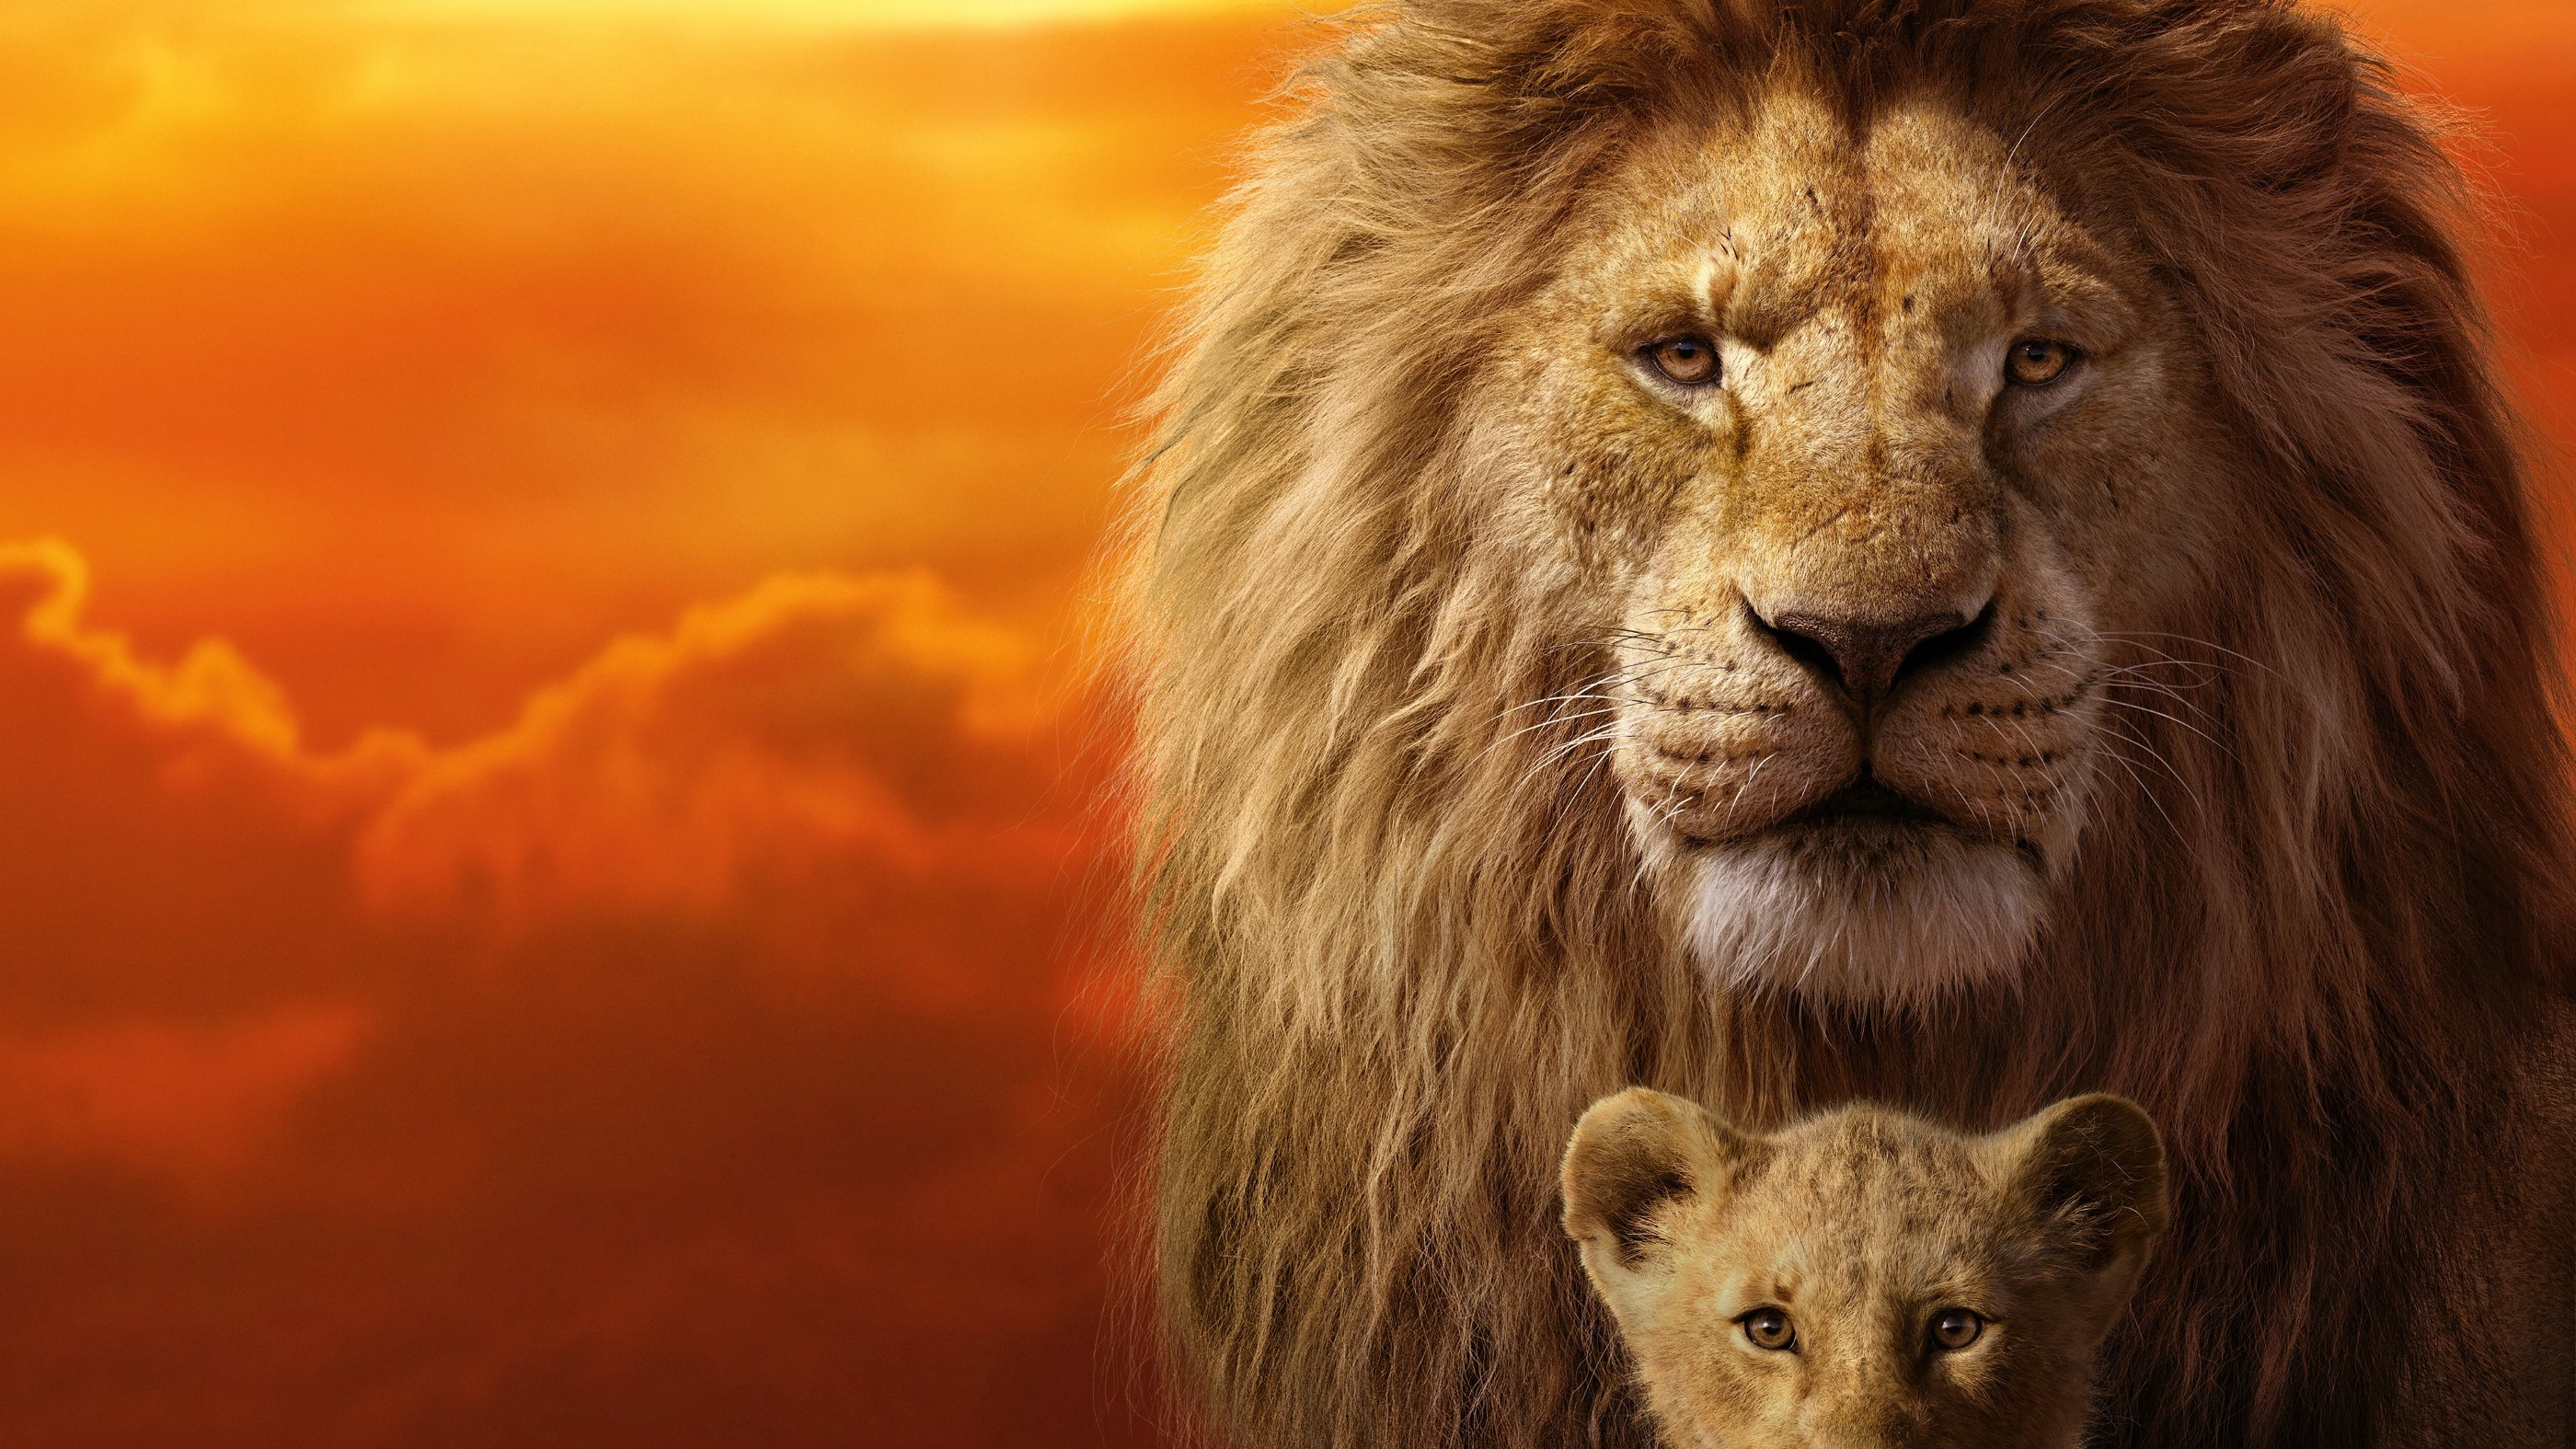 The Lion King 2019 Movies Review Dsy Chy Medium